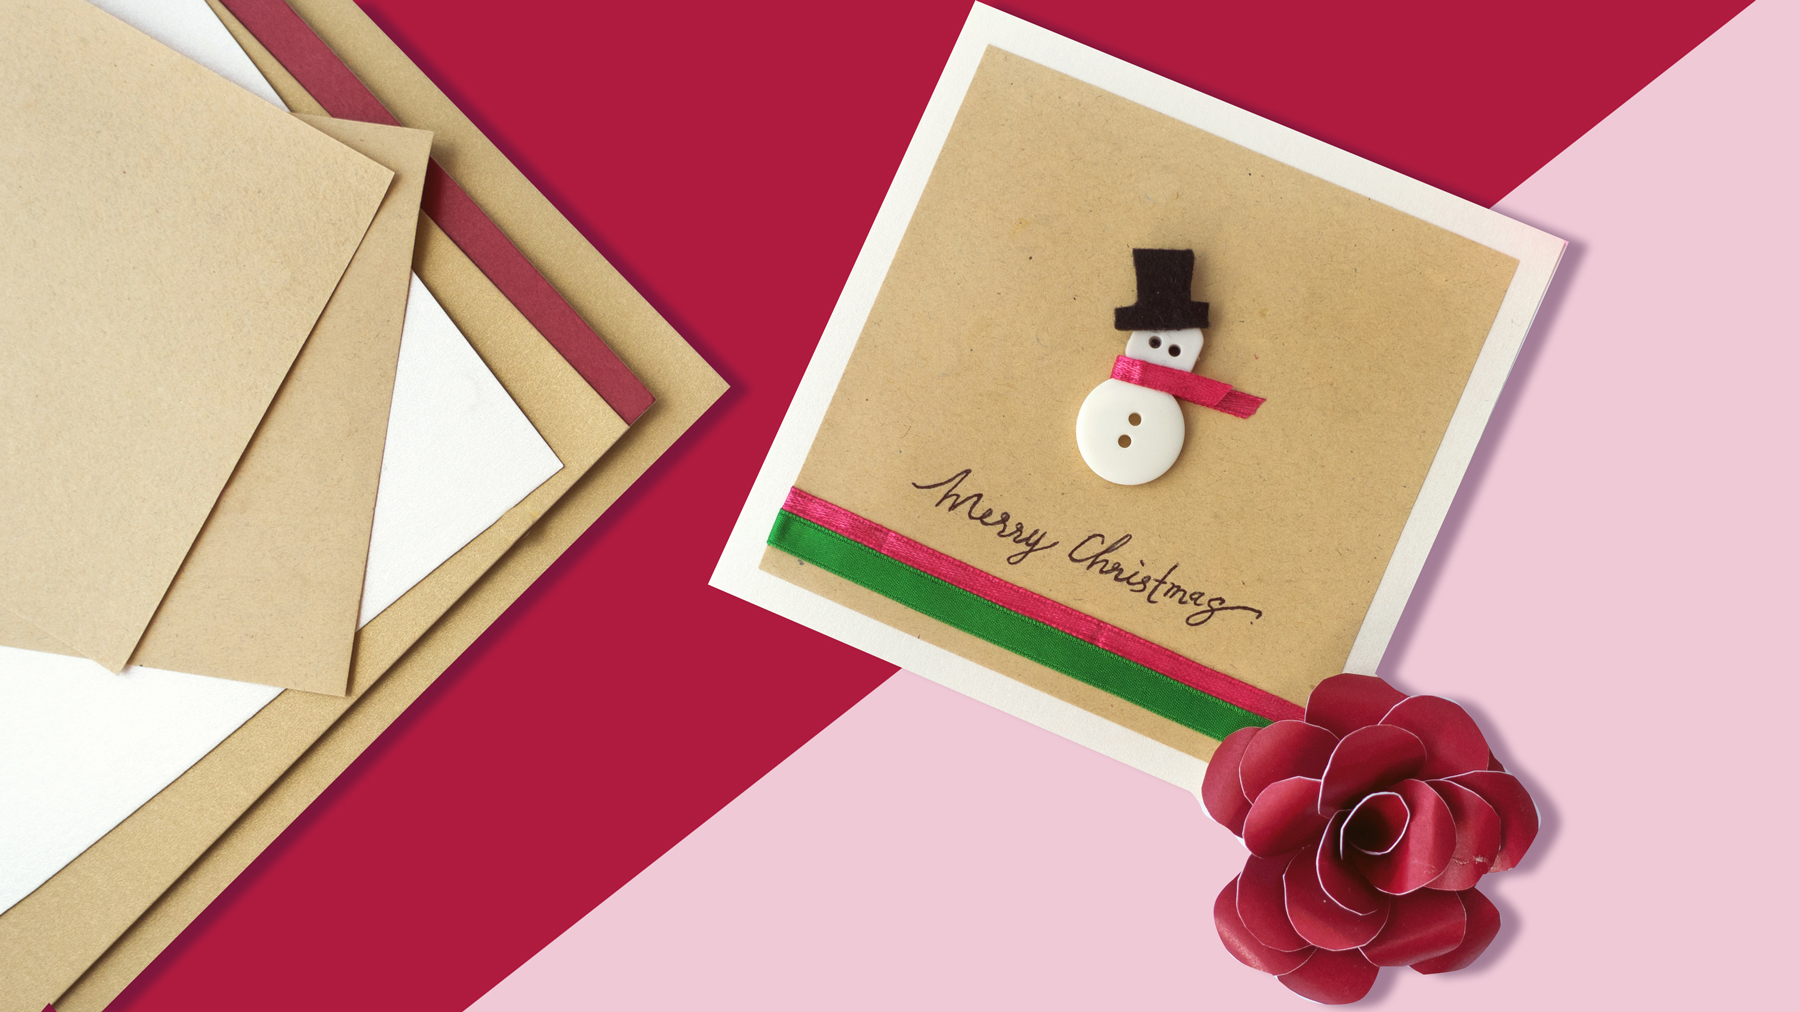 Christmas card with snowman on it: Christmas card sayings and holiday card sayings